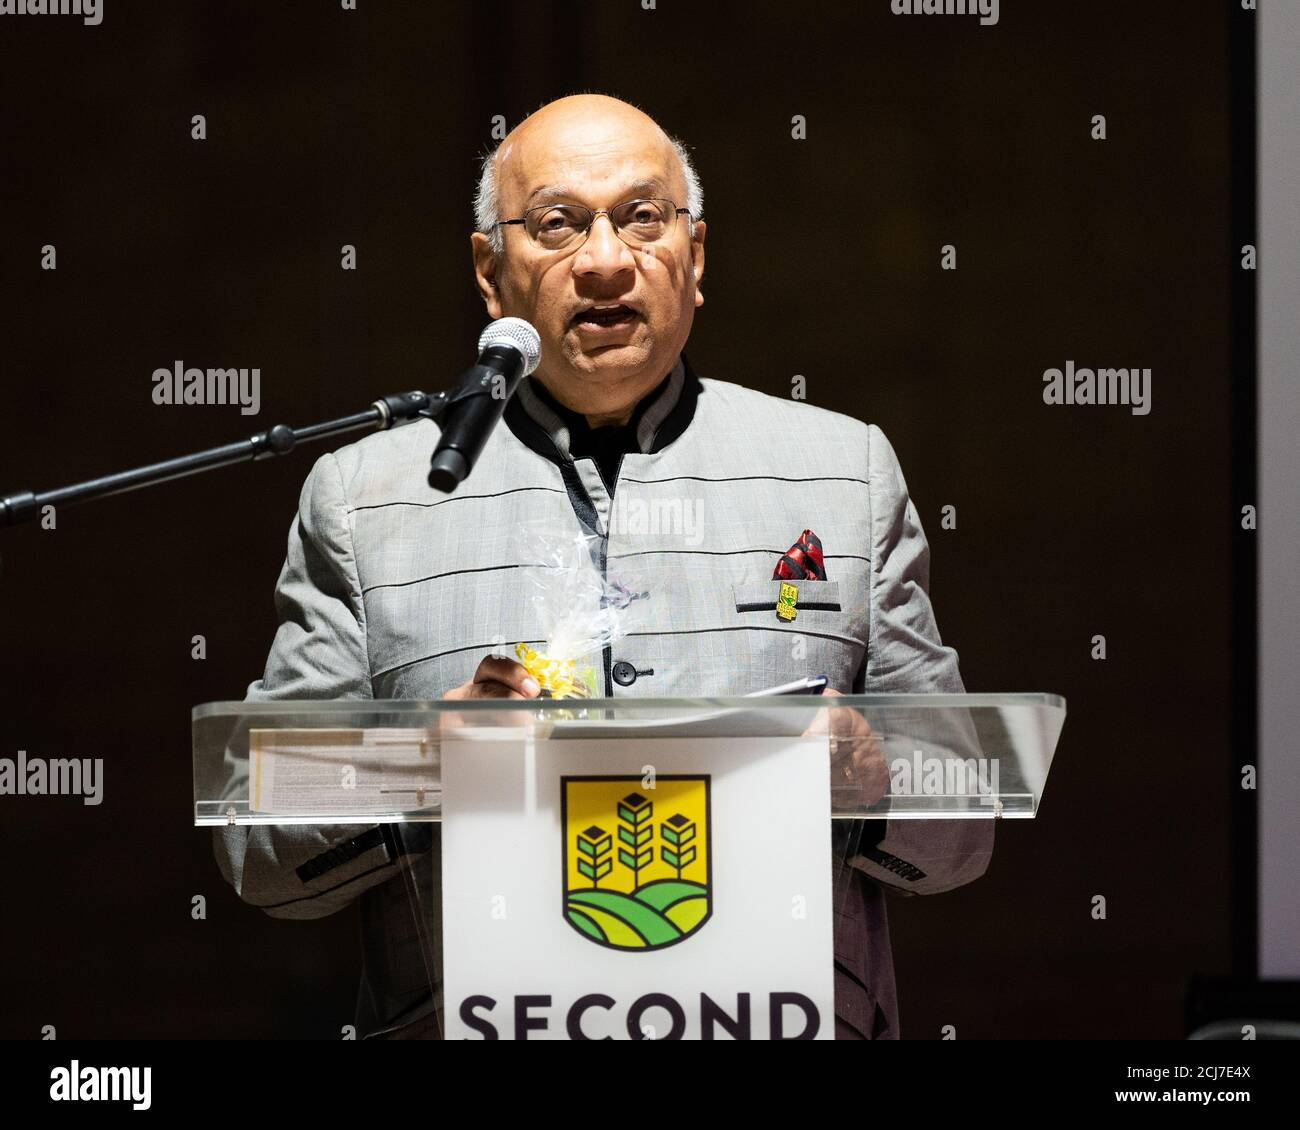 Wilmington, United States. 14th Sep, 2020. Ajit George, Founder and Manager of Second Chances Farms, speaks at Second Chances Farms. Credit: SOPA Images Limited/Alamy Live News Stock Photo